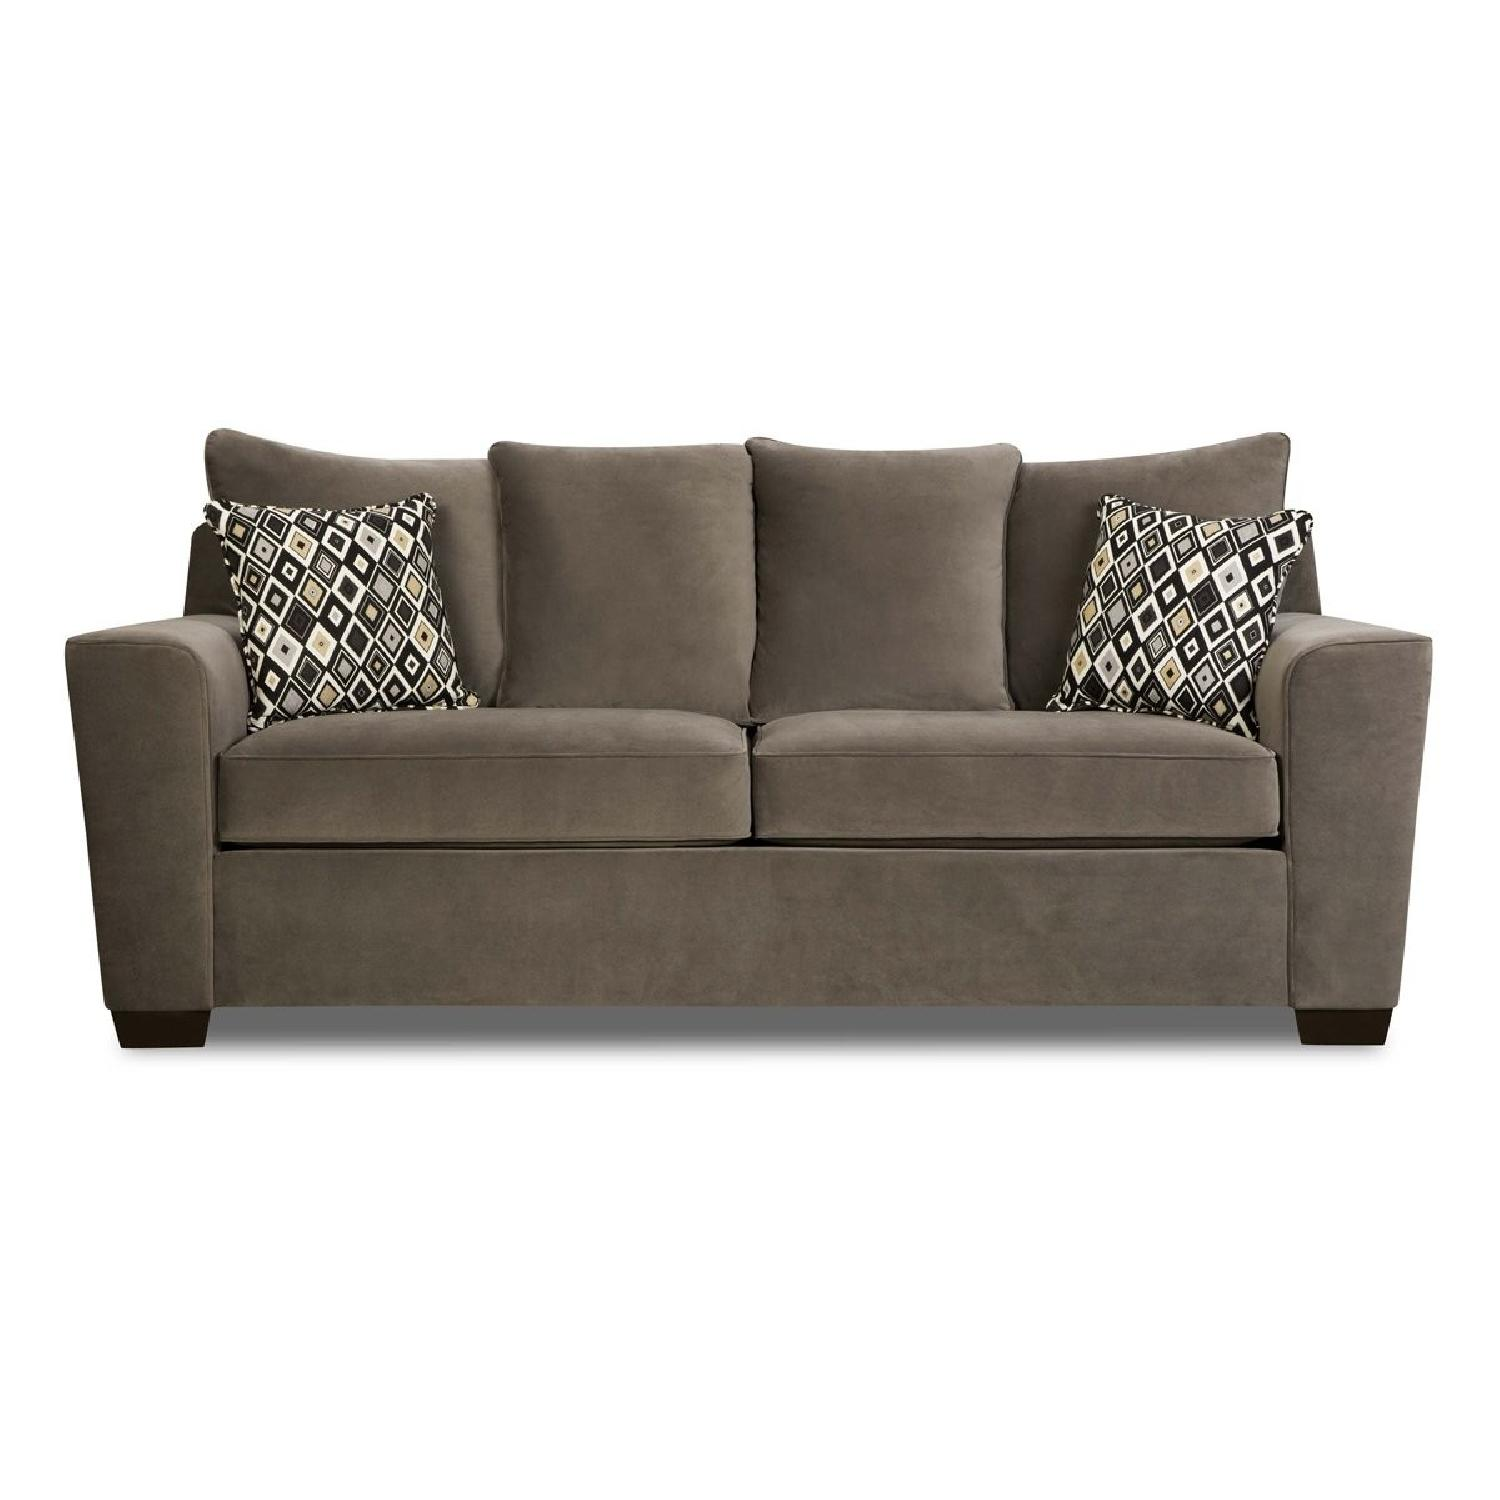 Jennifer Convertible Gray Sleeper Sofa + Oversized Chair